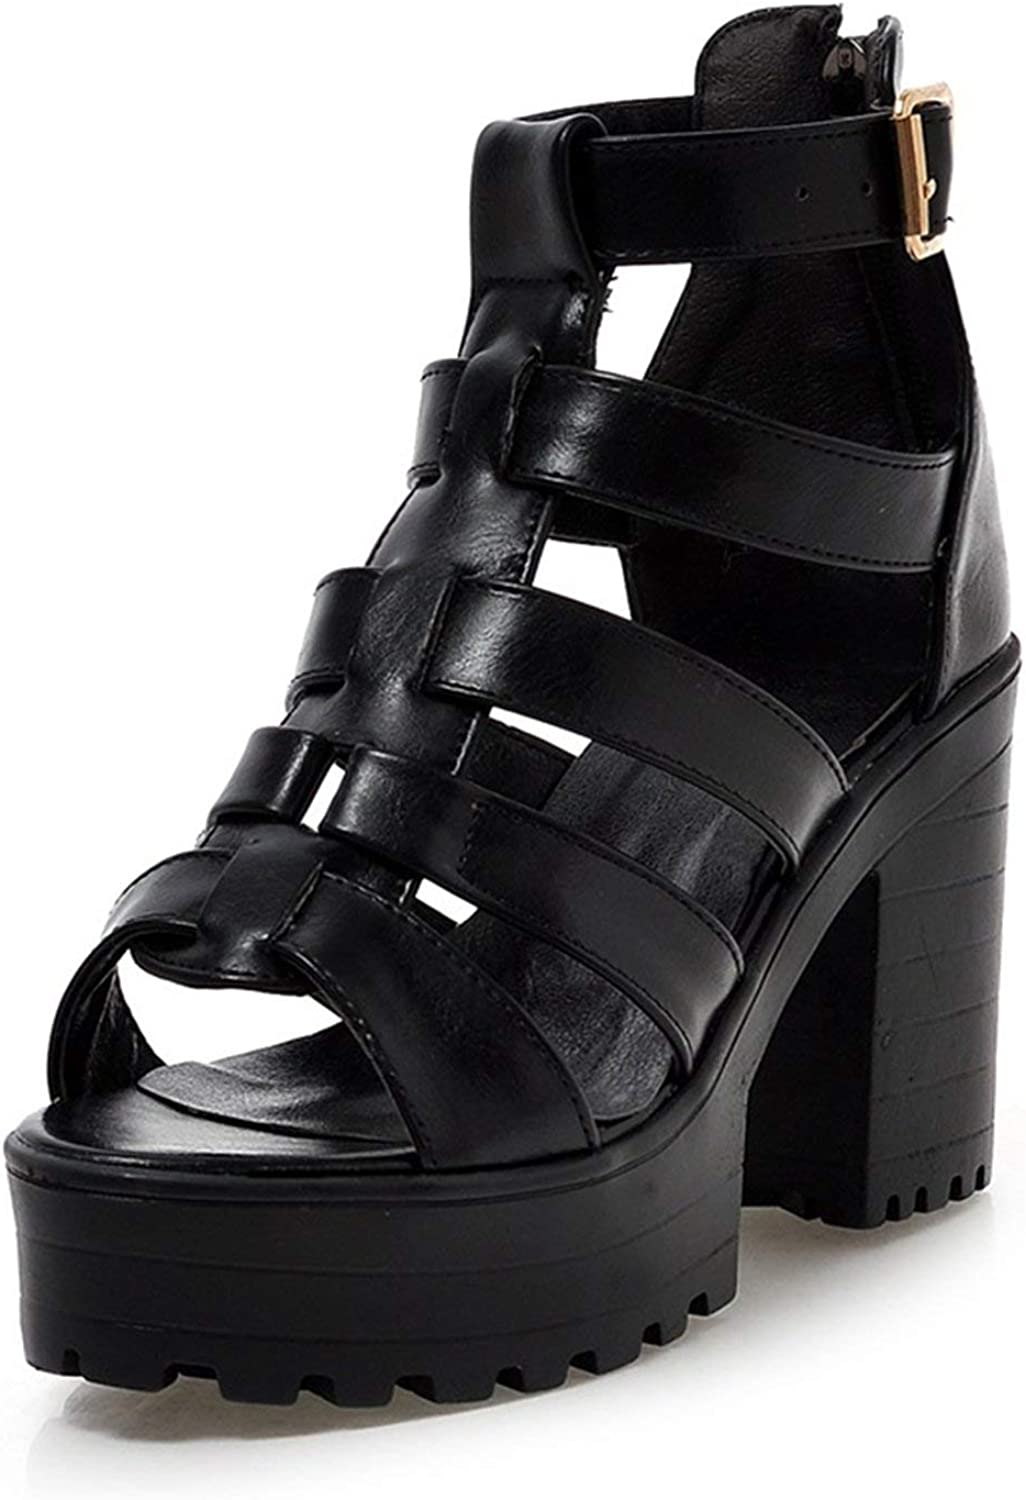 Jifnhtrs Summer Big Size 34-43 Black Women Gladiator Sandals Platform High Wide Heels shoes Woman